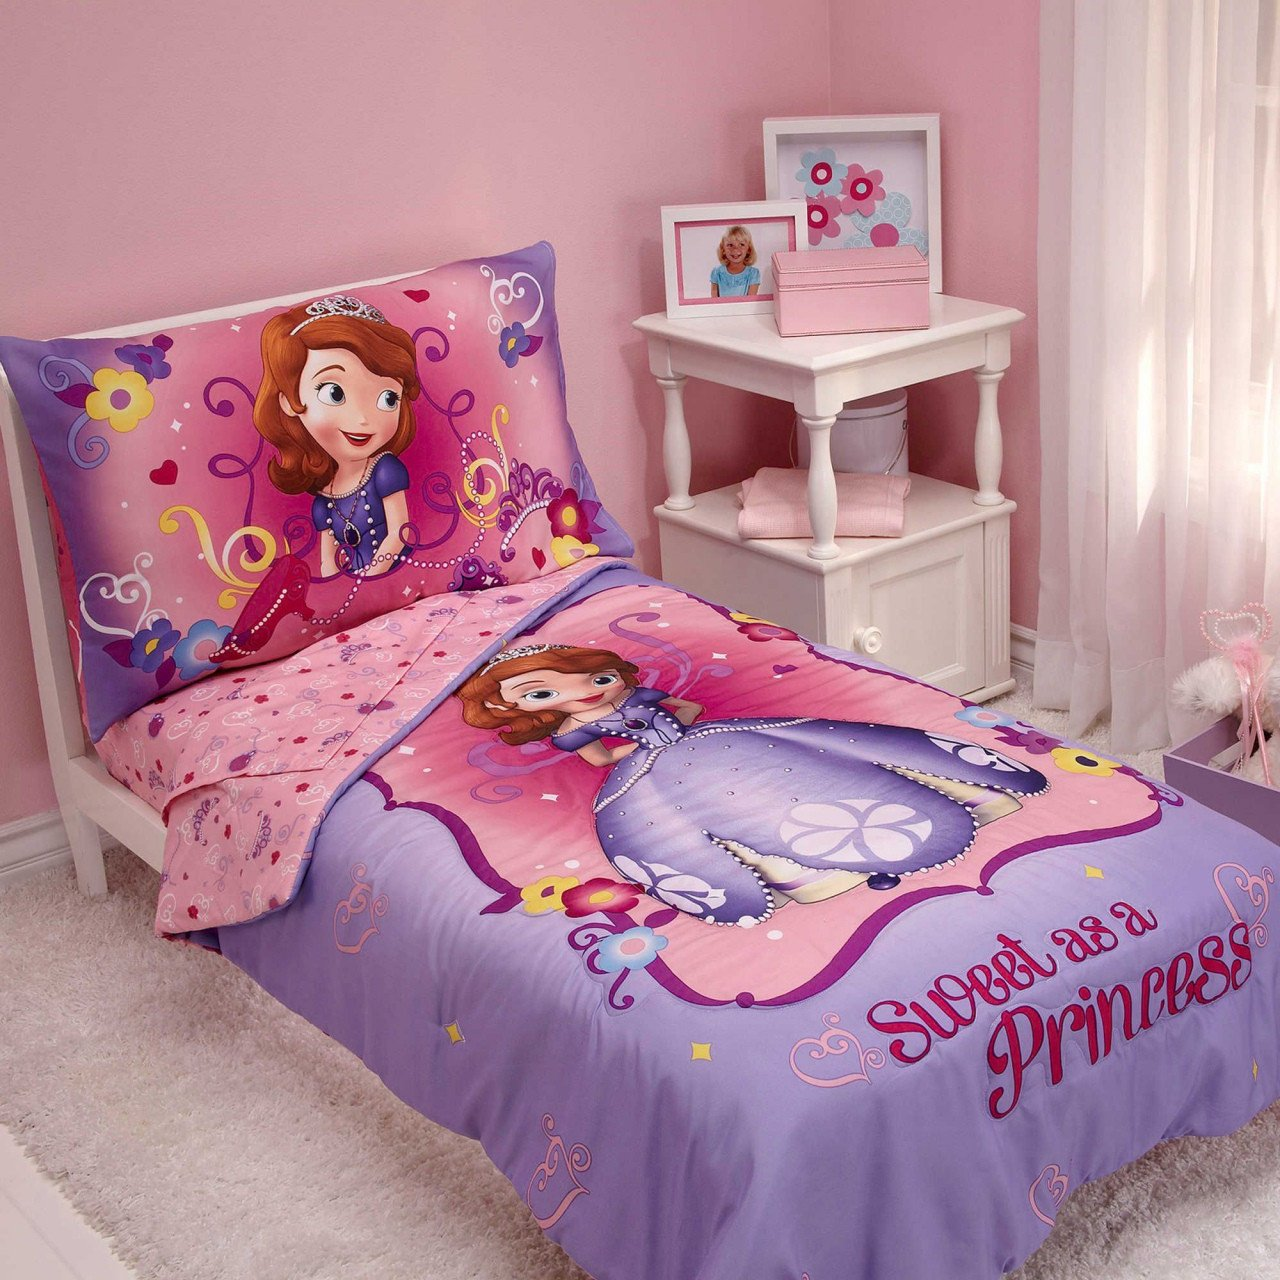 Disney Cars Bedroom Set Inspirational Frozen Bedroom Set — Procura Home Blog